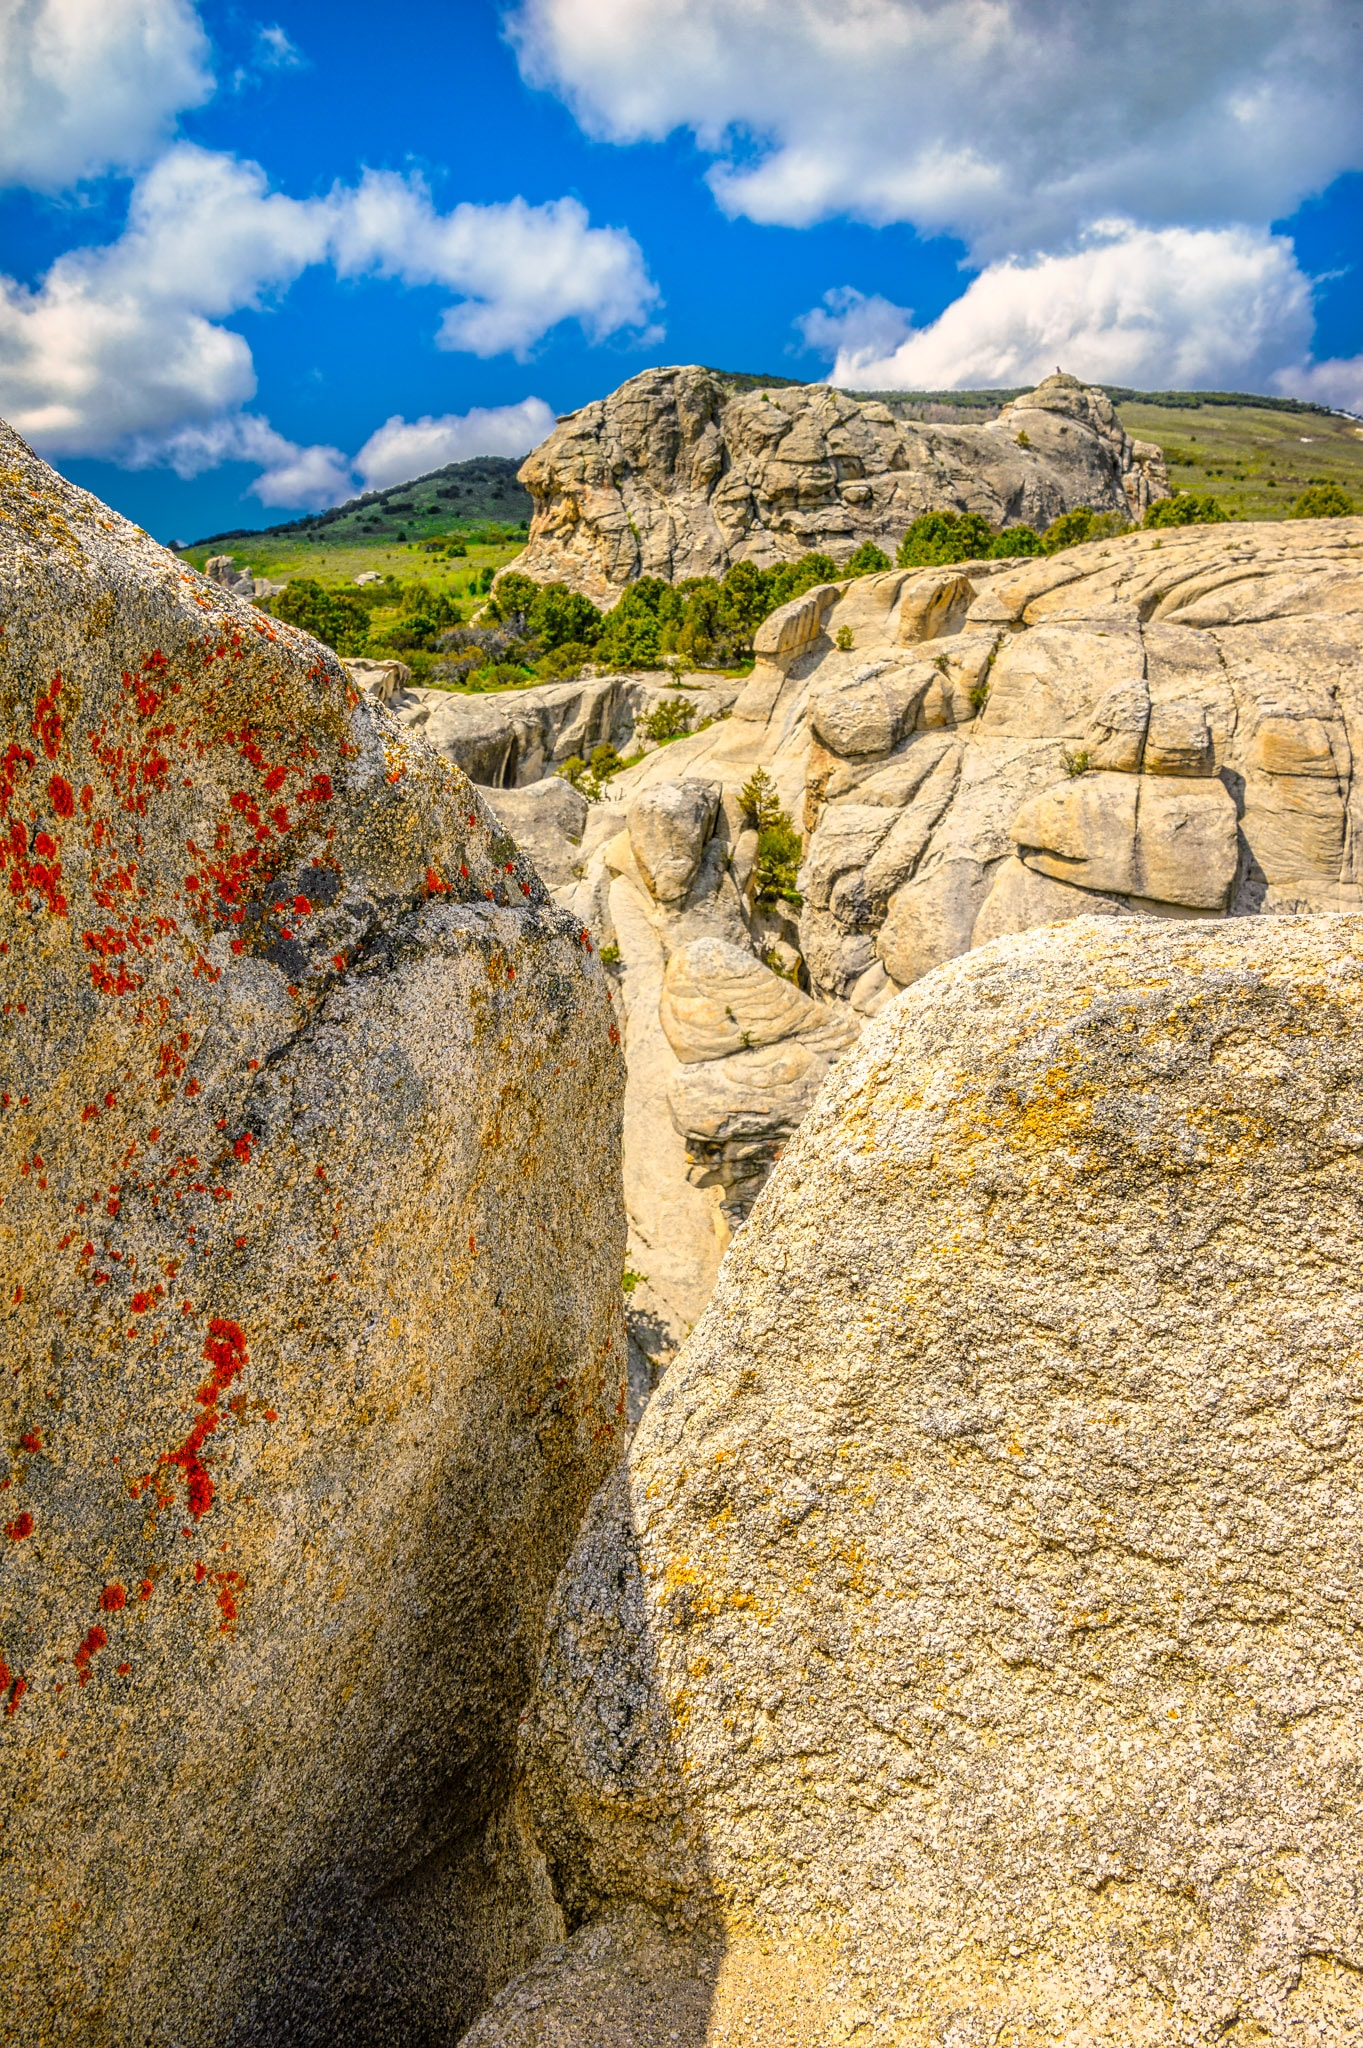 A view through a cleft in a granite rock showing additional granite formations in the distance in City of Rocks National Preserve, near Almo, Idaho.